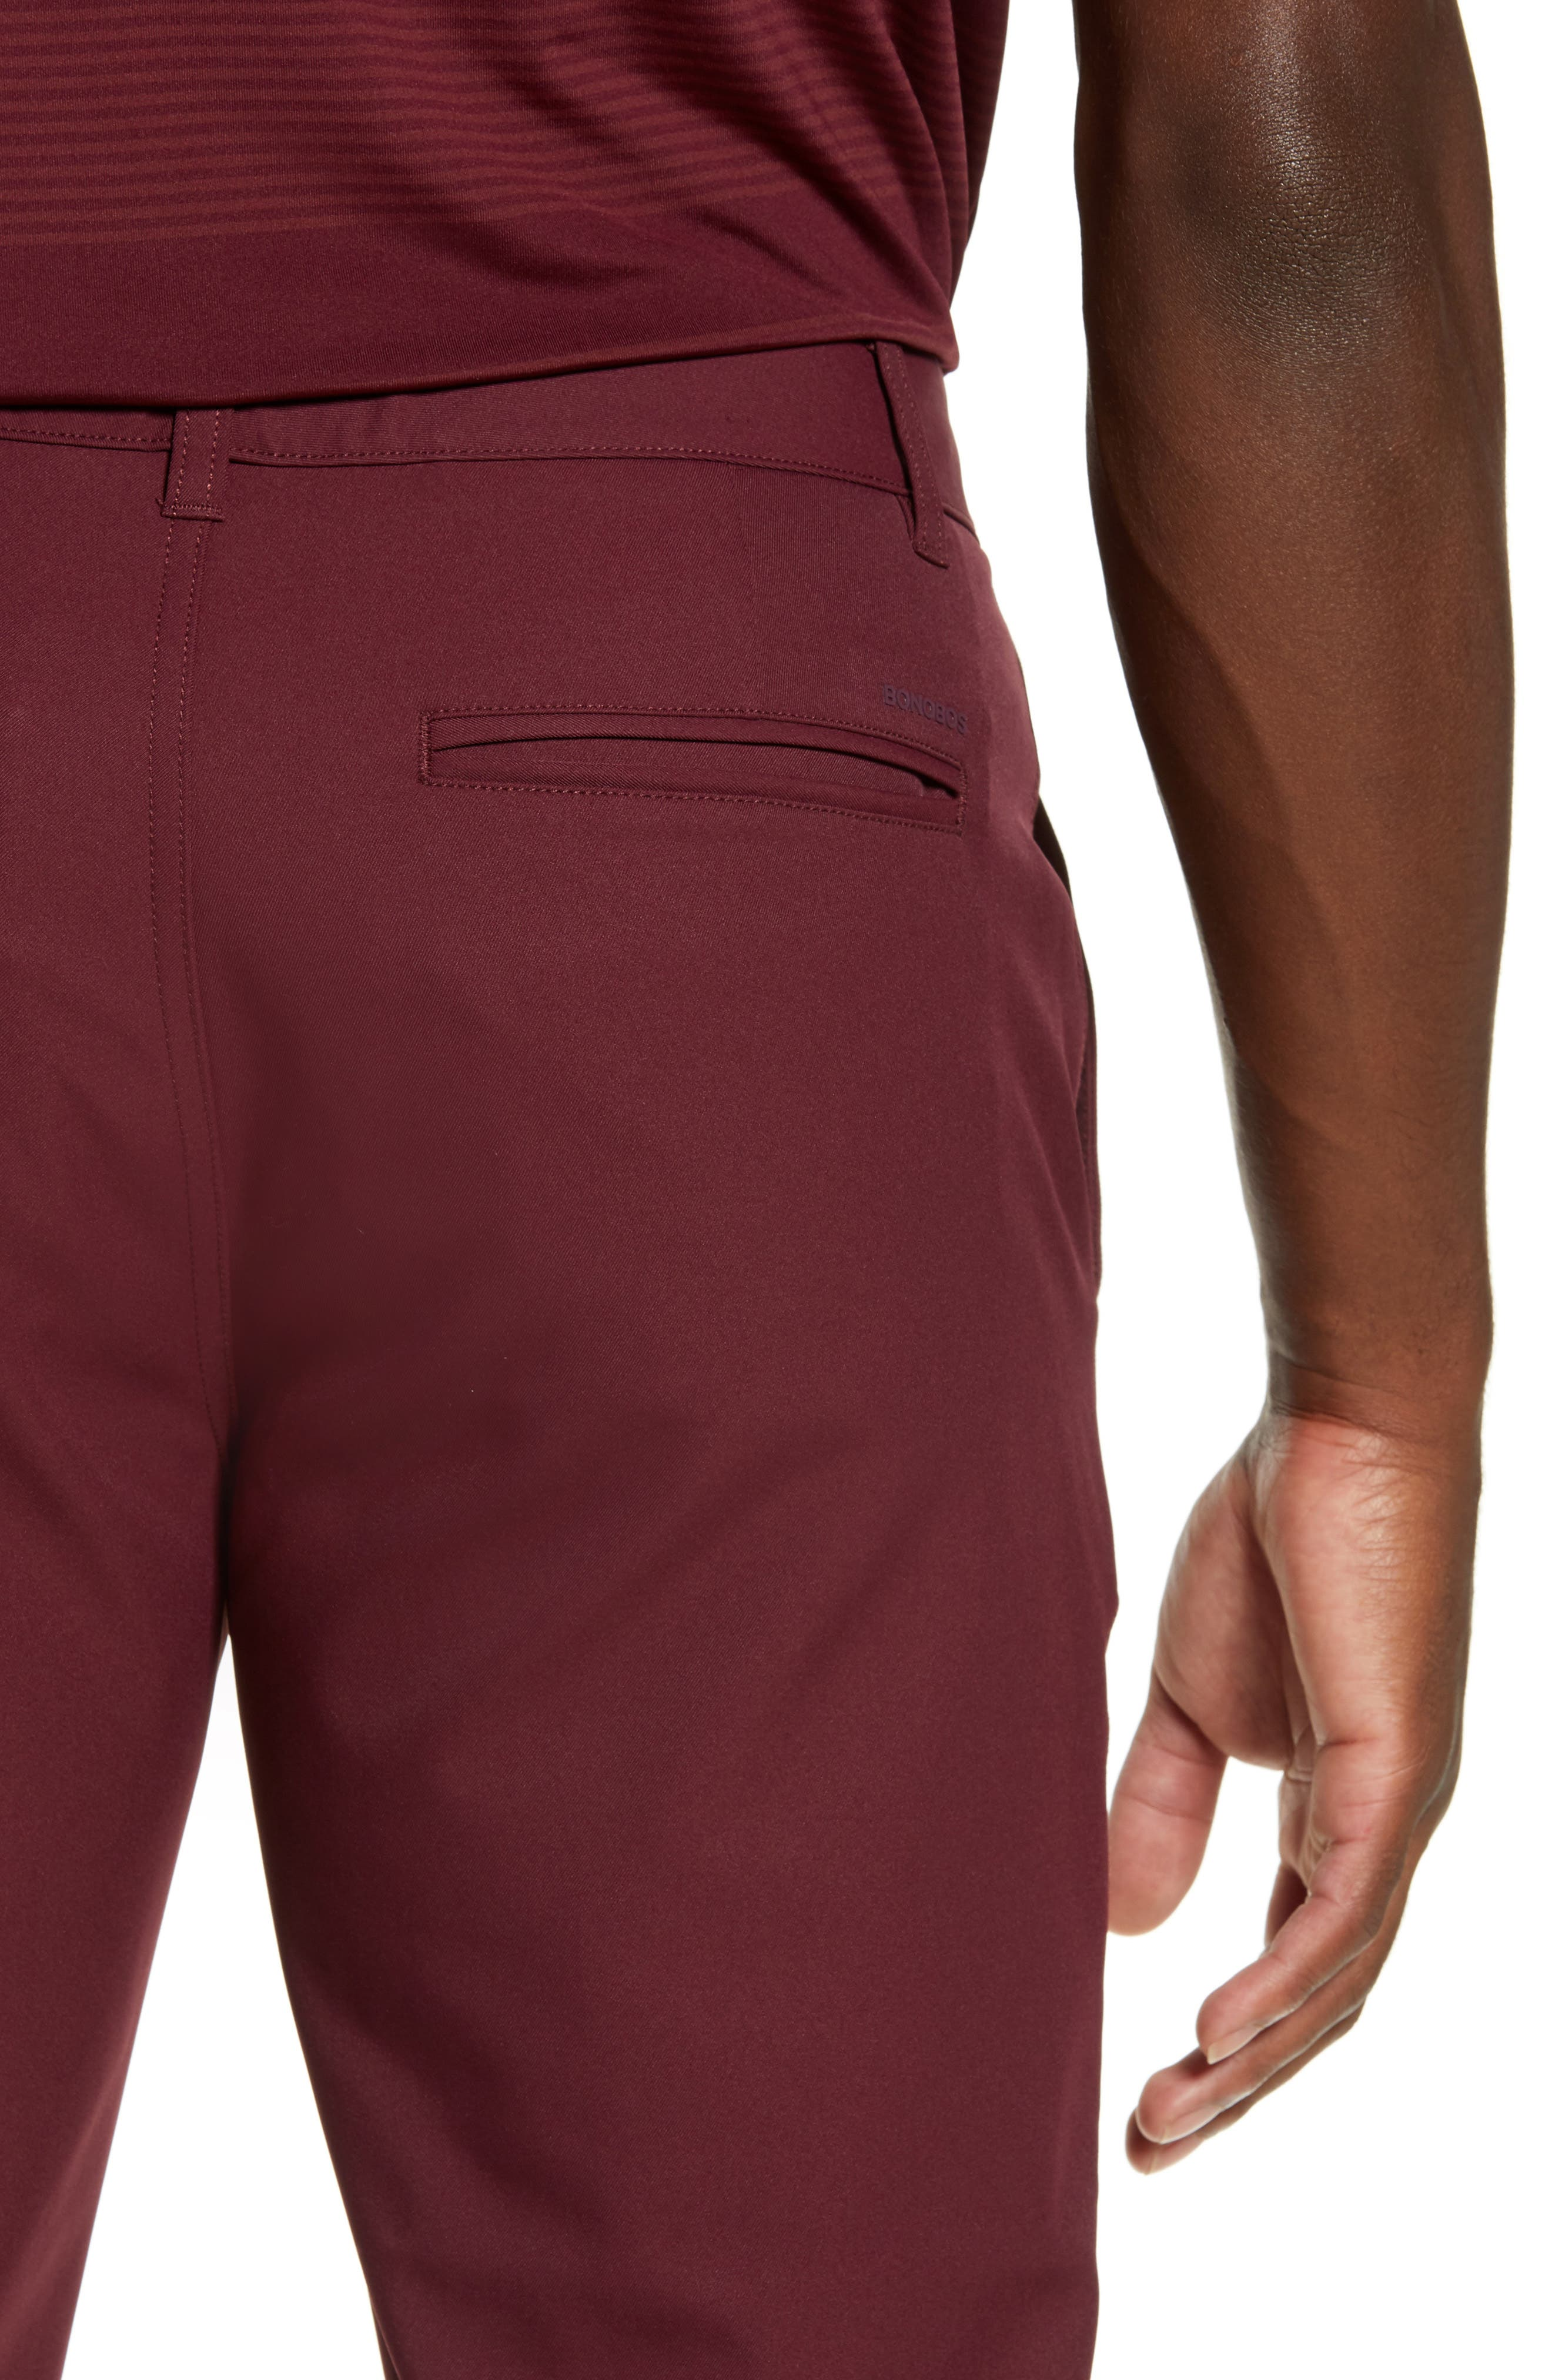 Highland Slim Fit Golf Pants,                             Alternate thumbnail 4, color,                             600